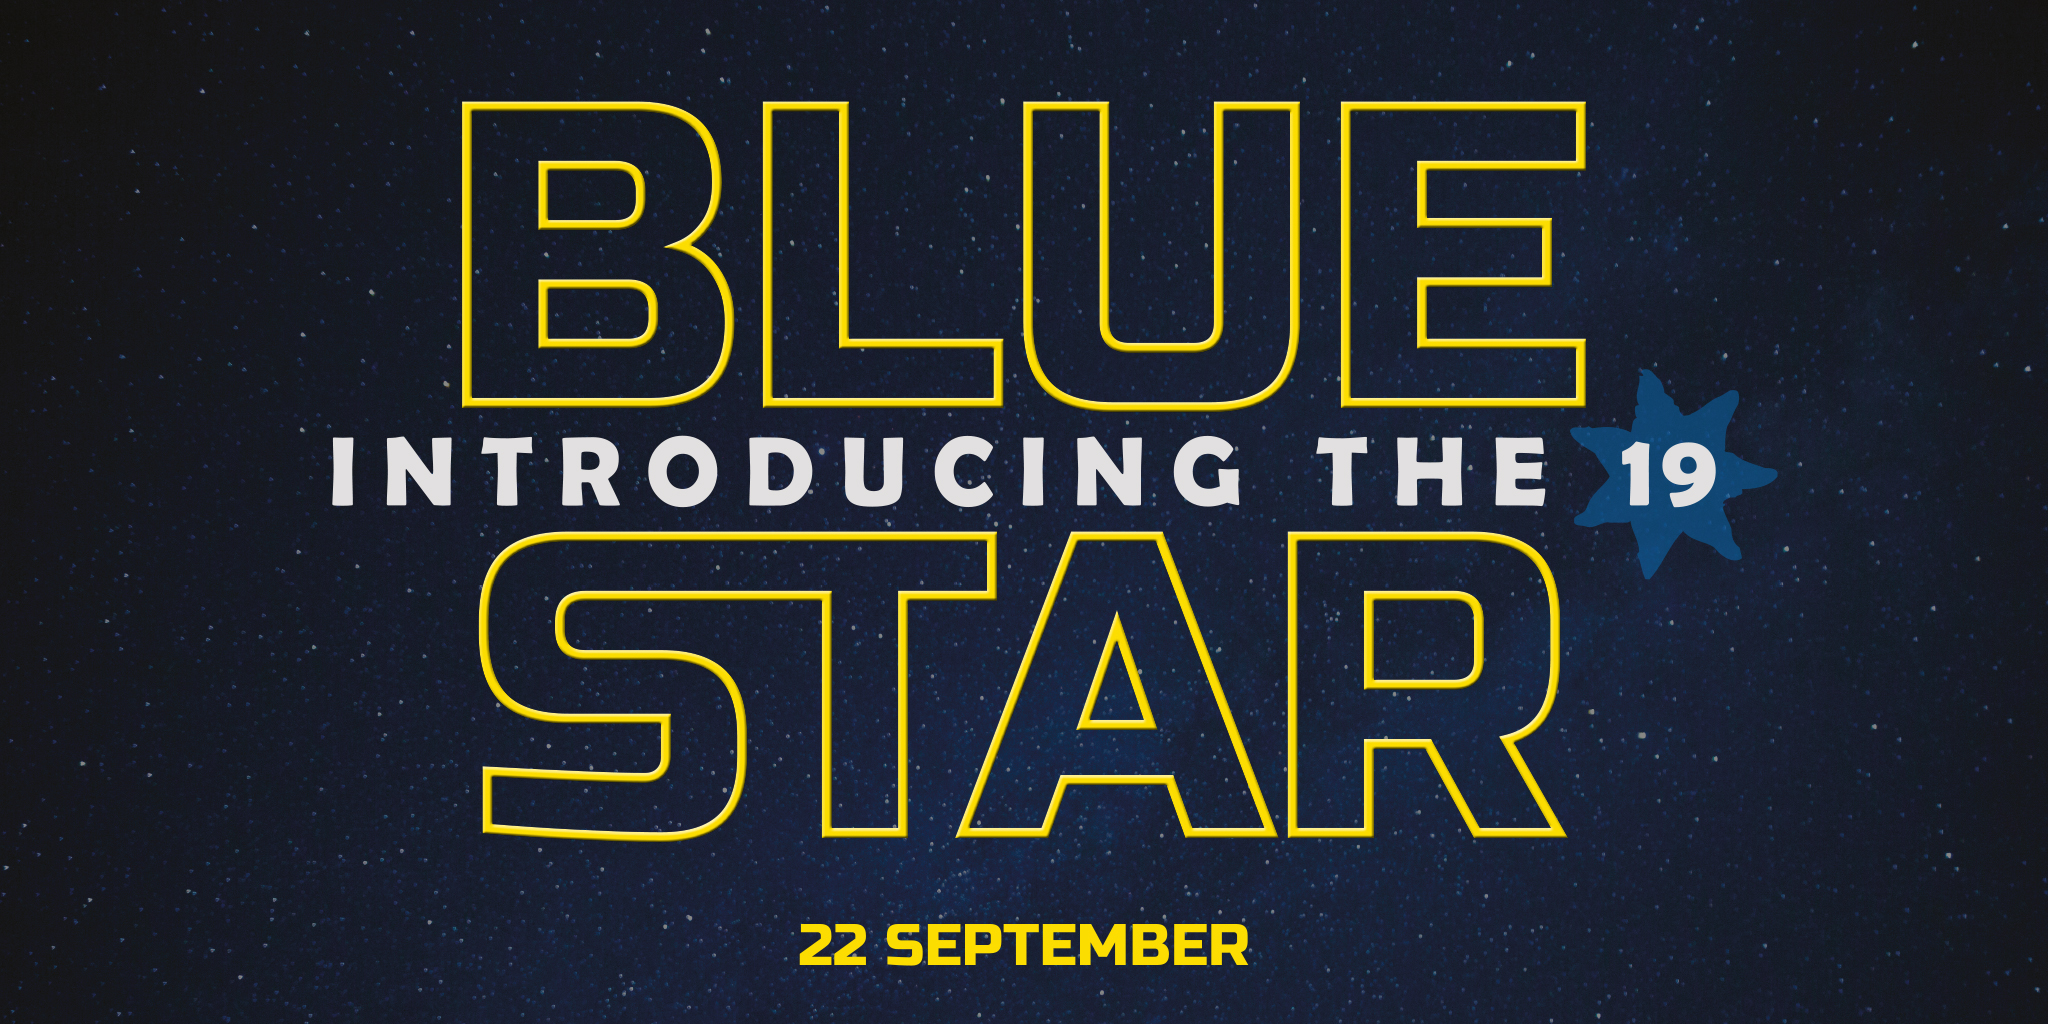 Introducing the Bluestar 19 - from 22nd September